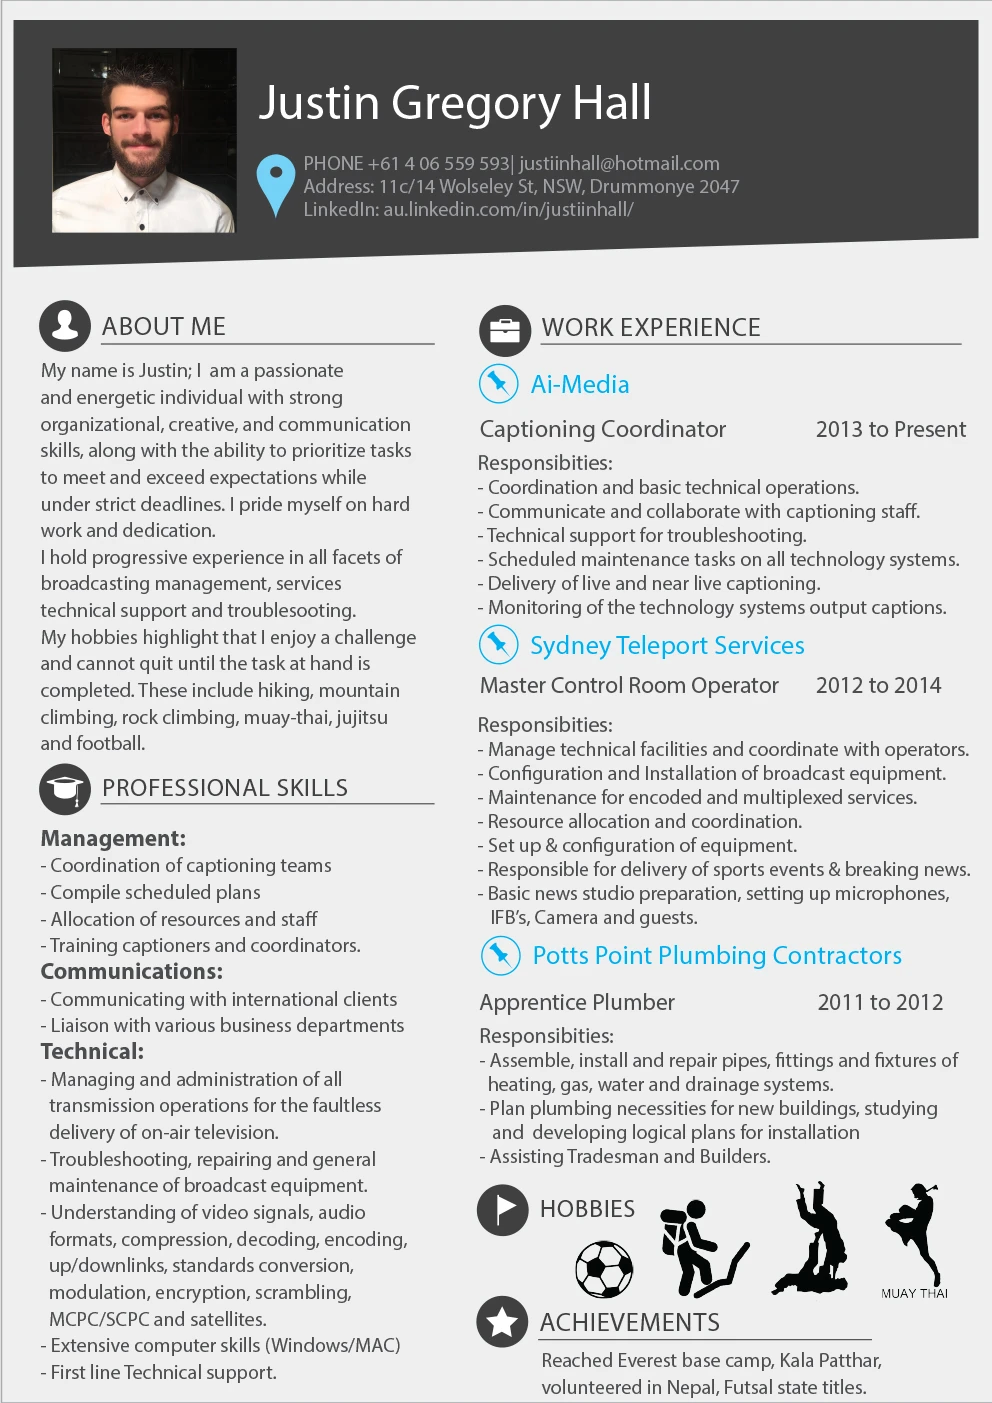 I\'ll rewrite and redesign your resume, CV and cover letter for $10